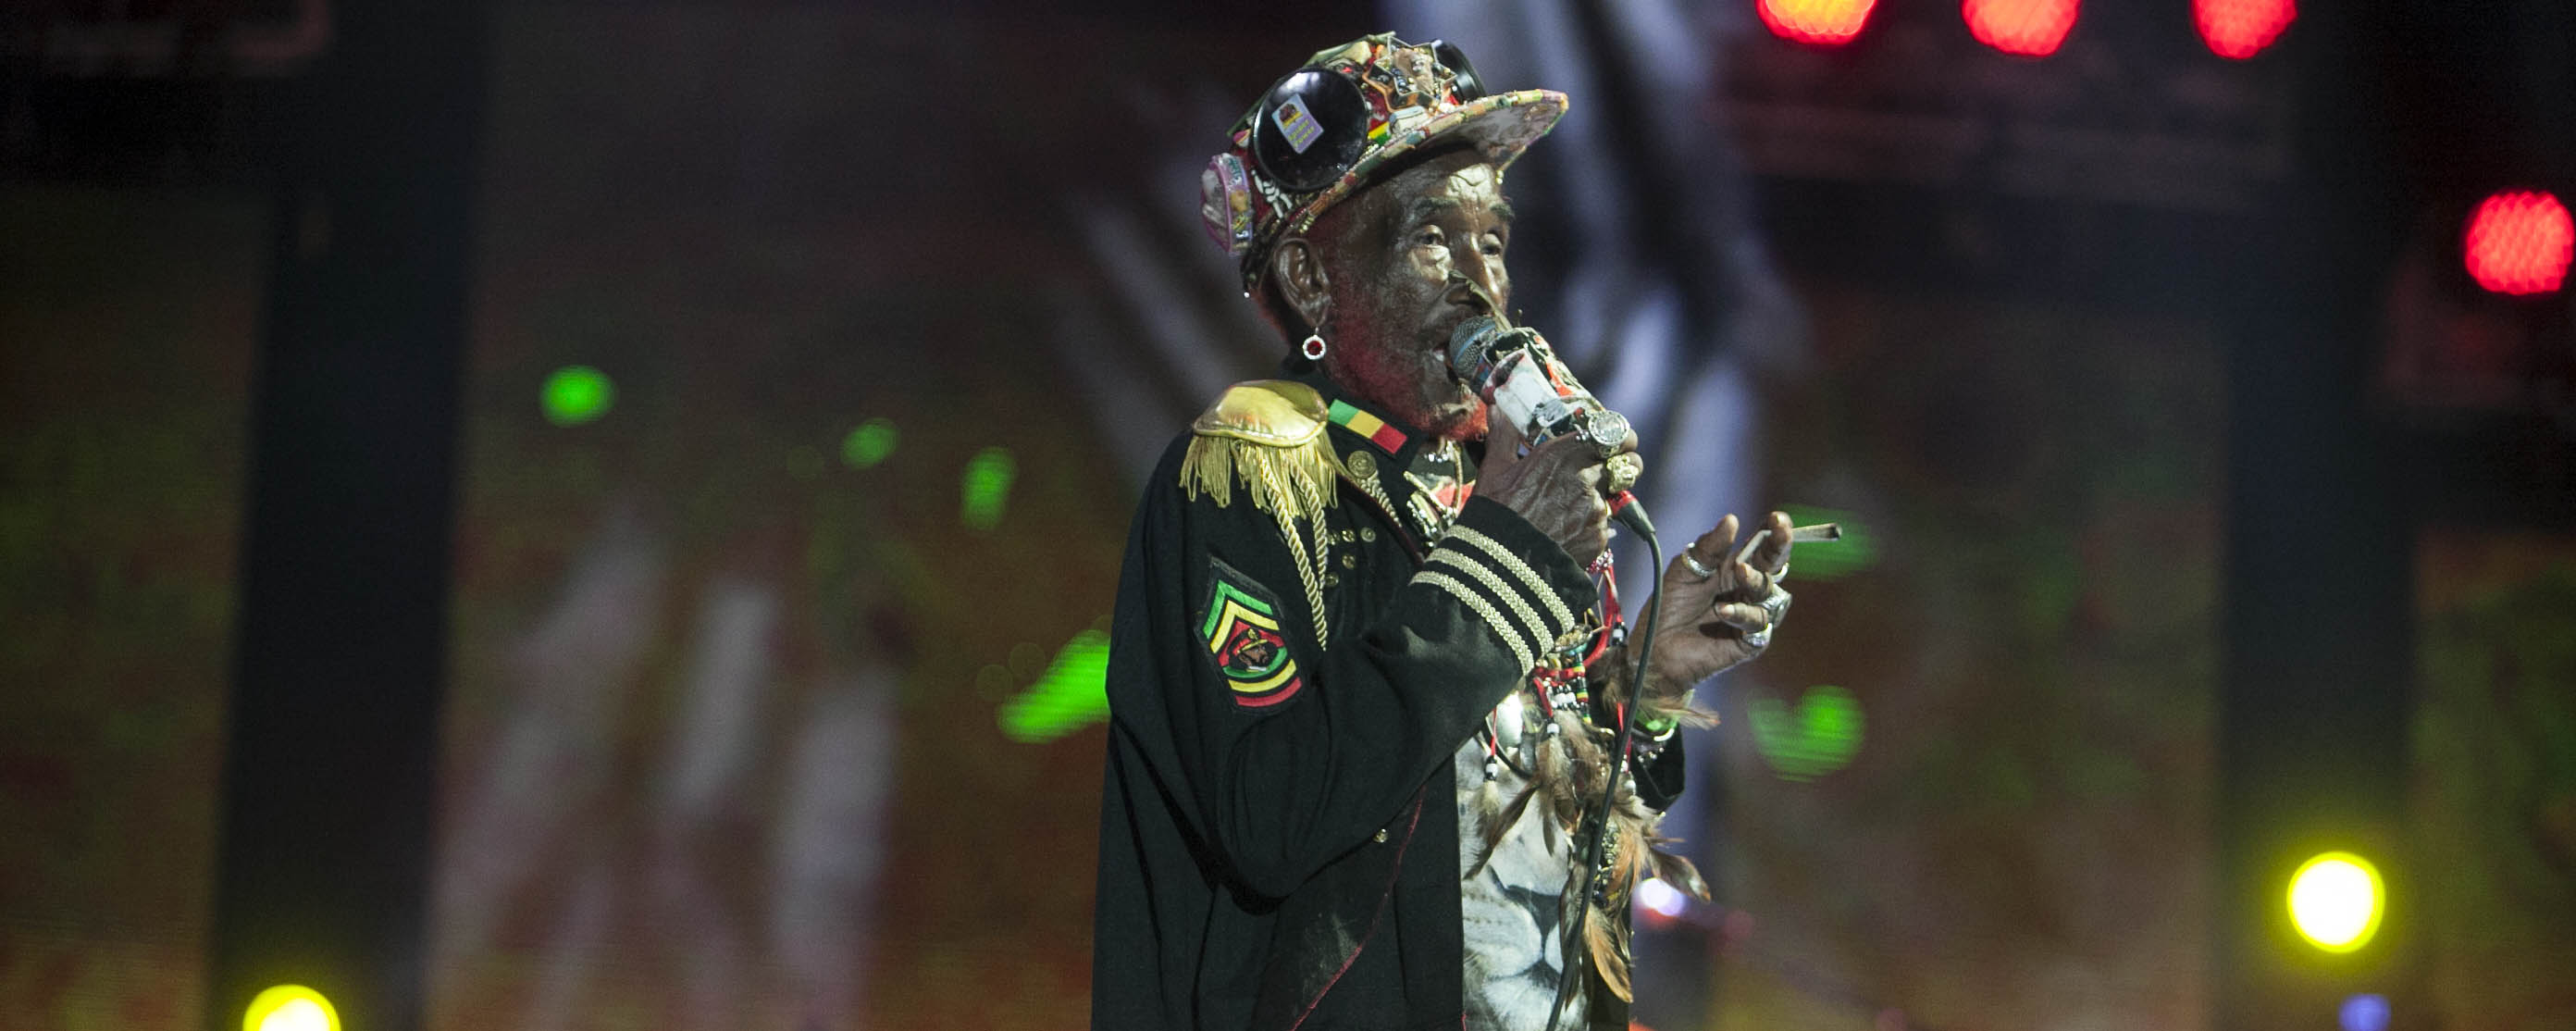 Lee Scratch Perry @ High Vibes 2016 - Negril Jamaica